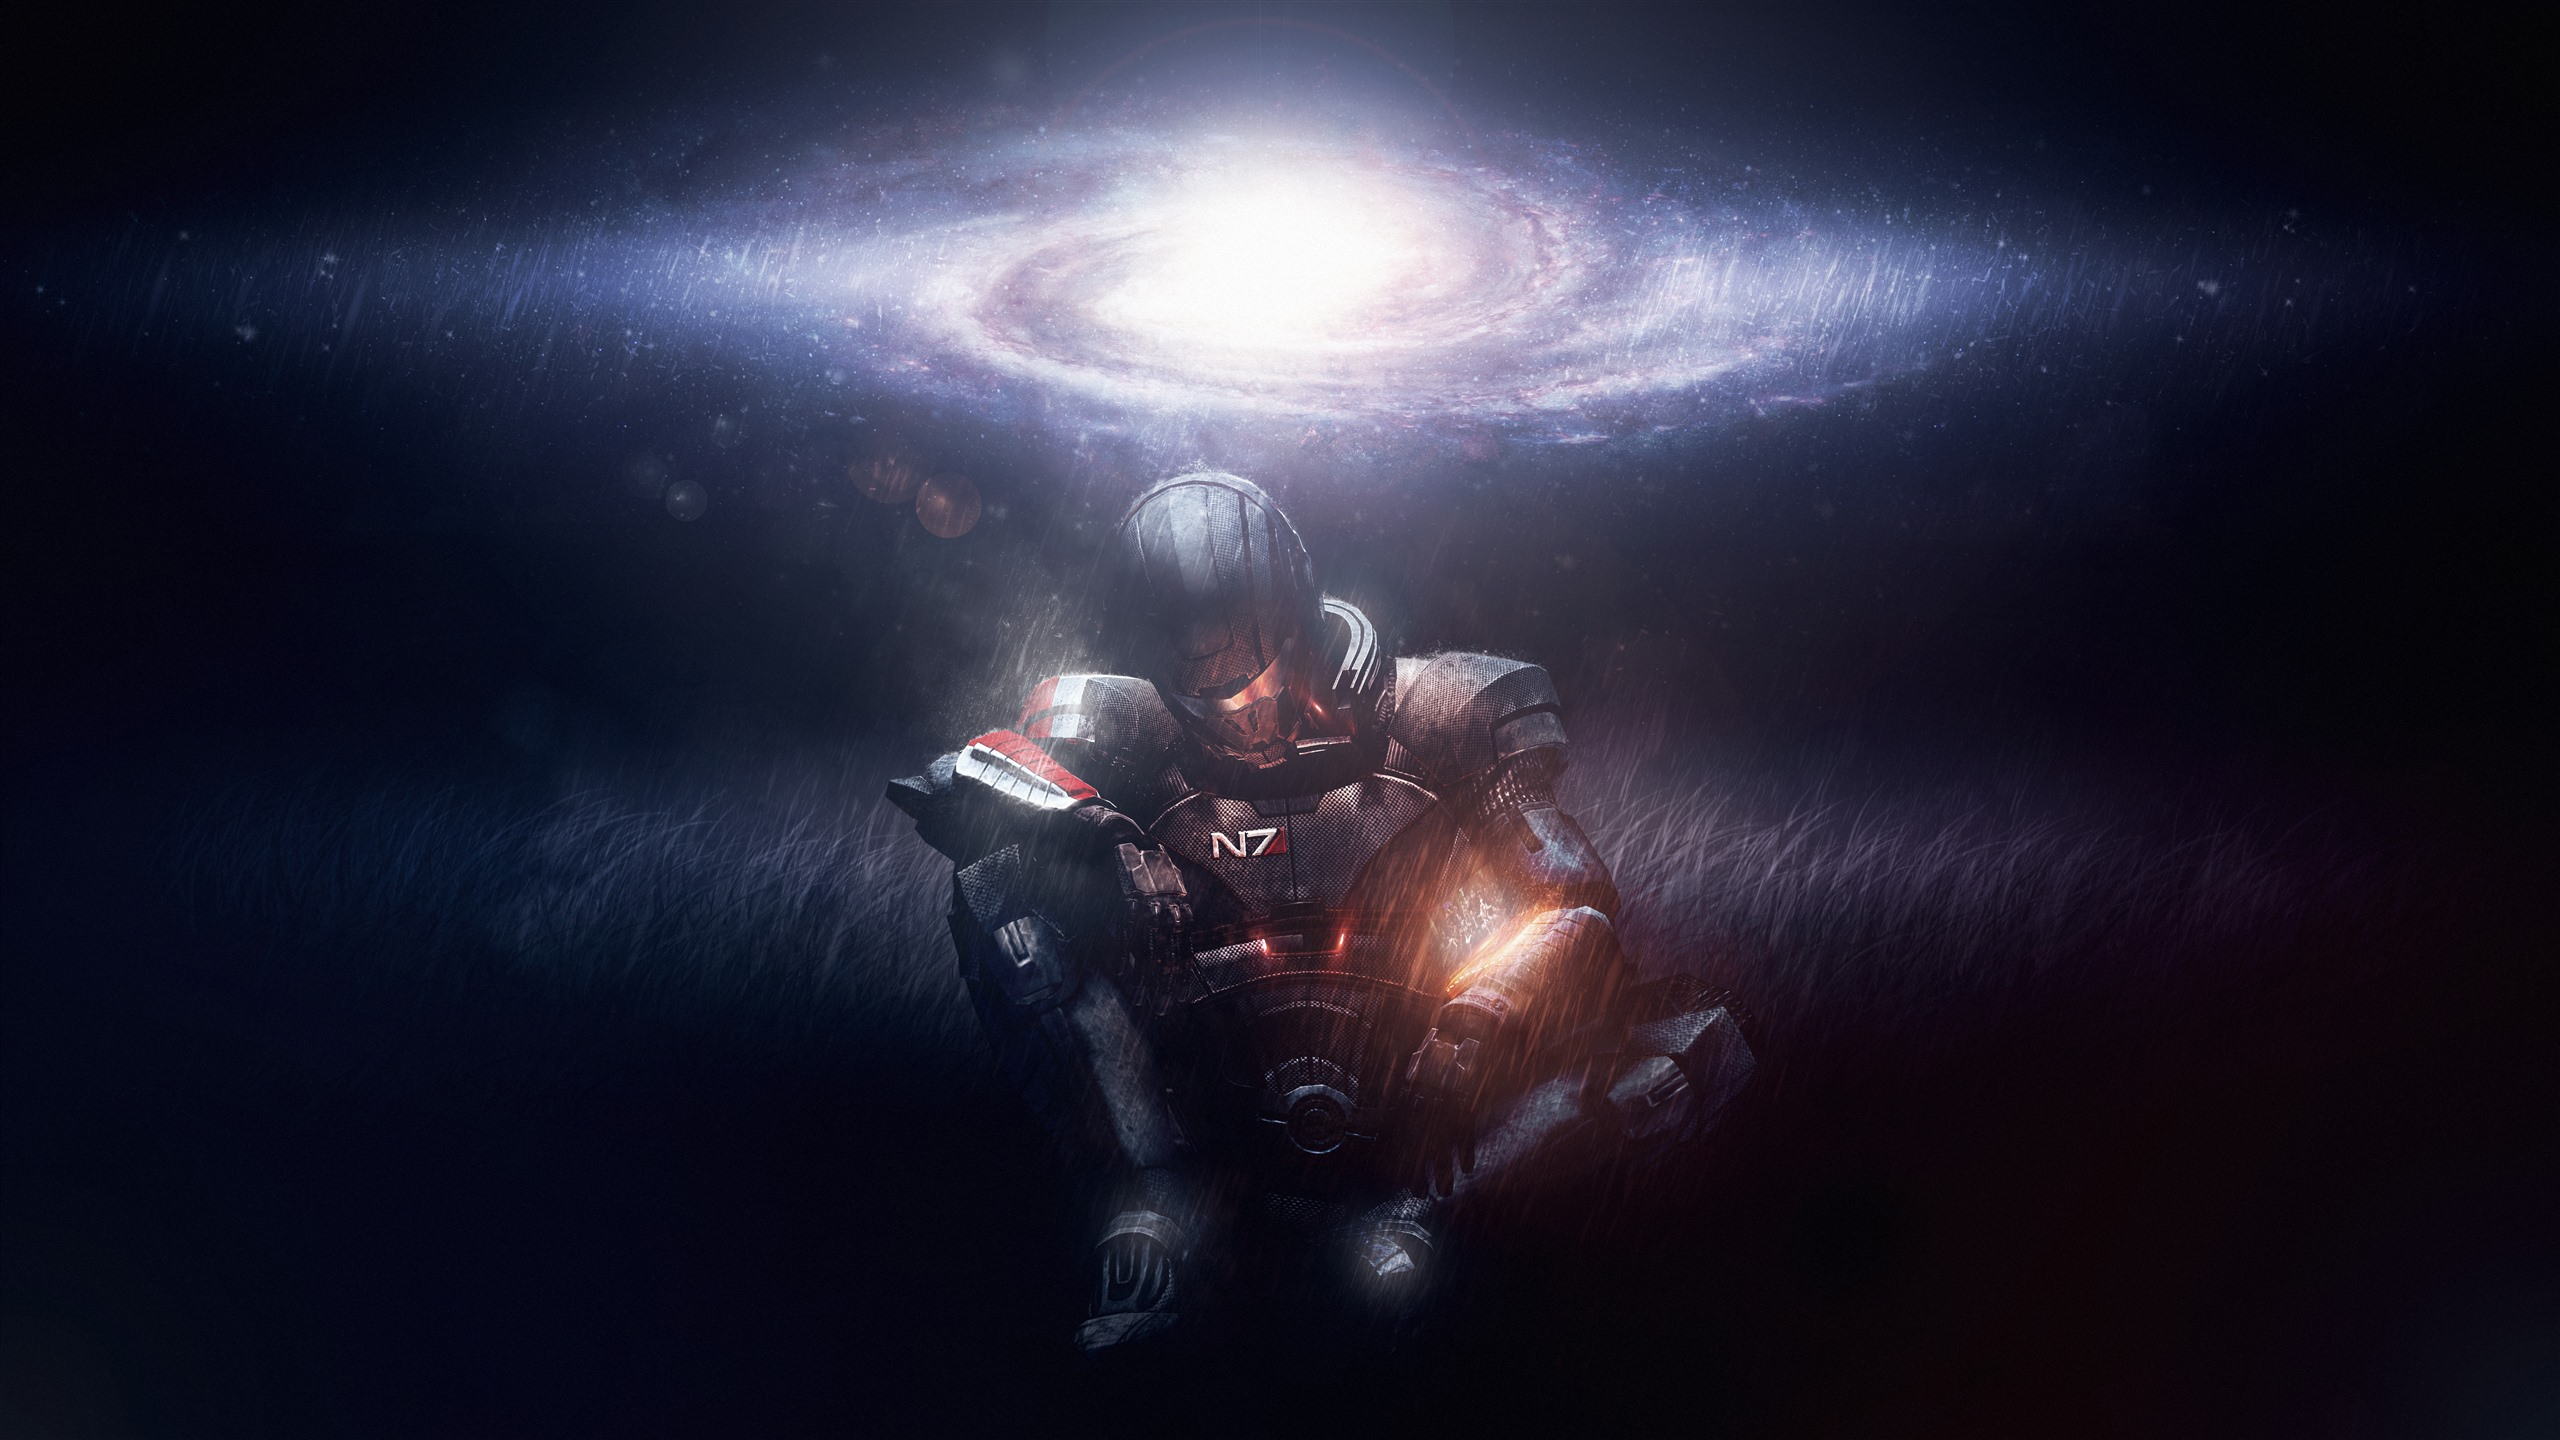 Mass Effect Warrior Galaxy Stars 1242x2688 Iphone 11 Pro Xs Max